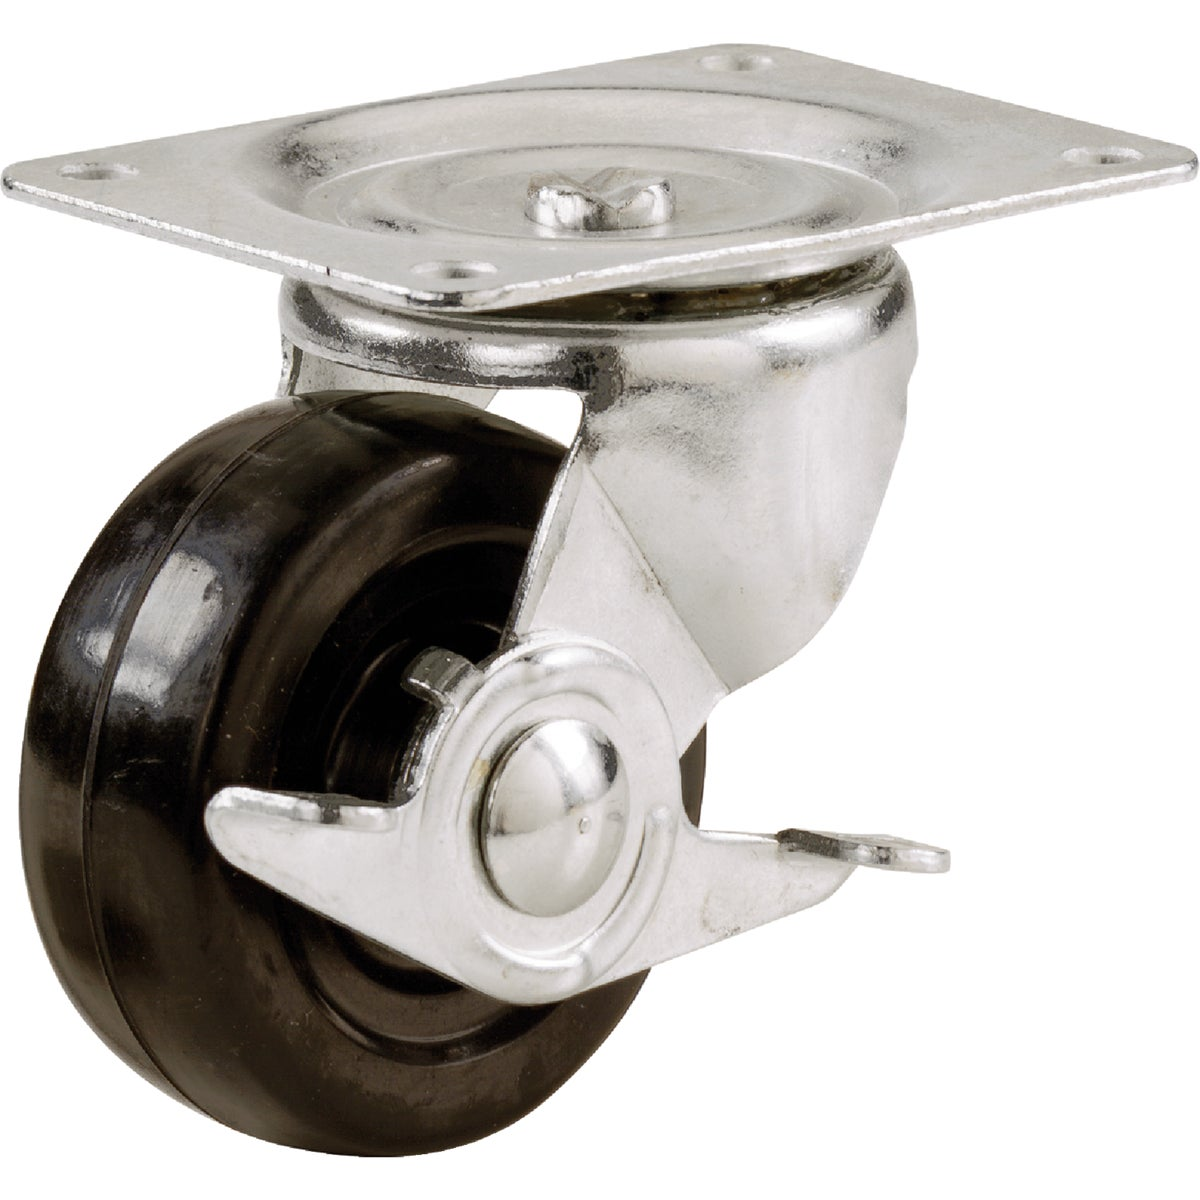 "3"" SP CASTER W/BRAKE - 9511 by Shepherd Hardware"